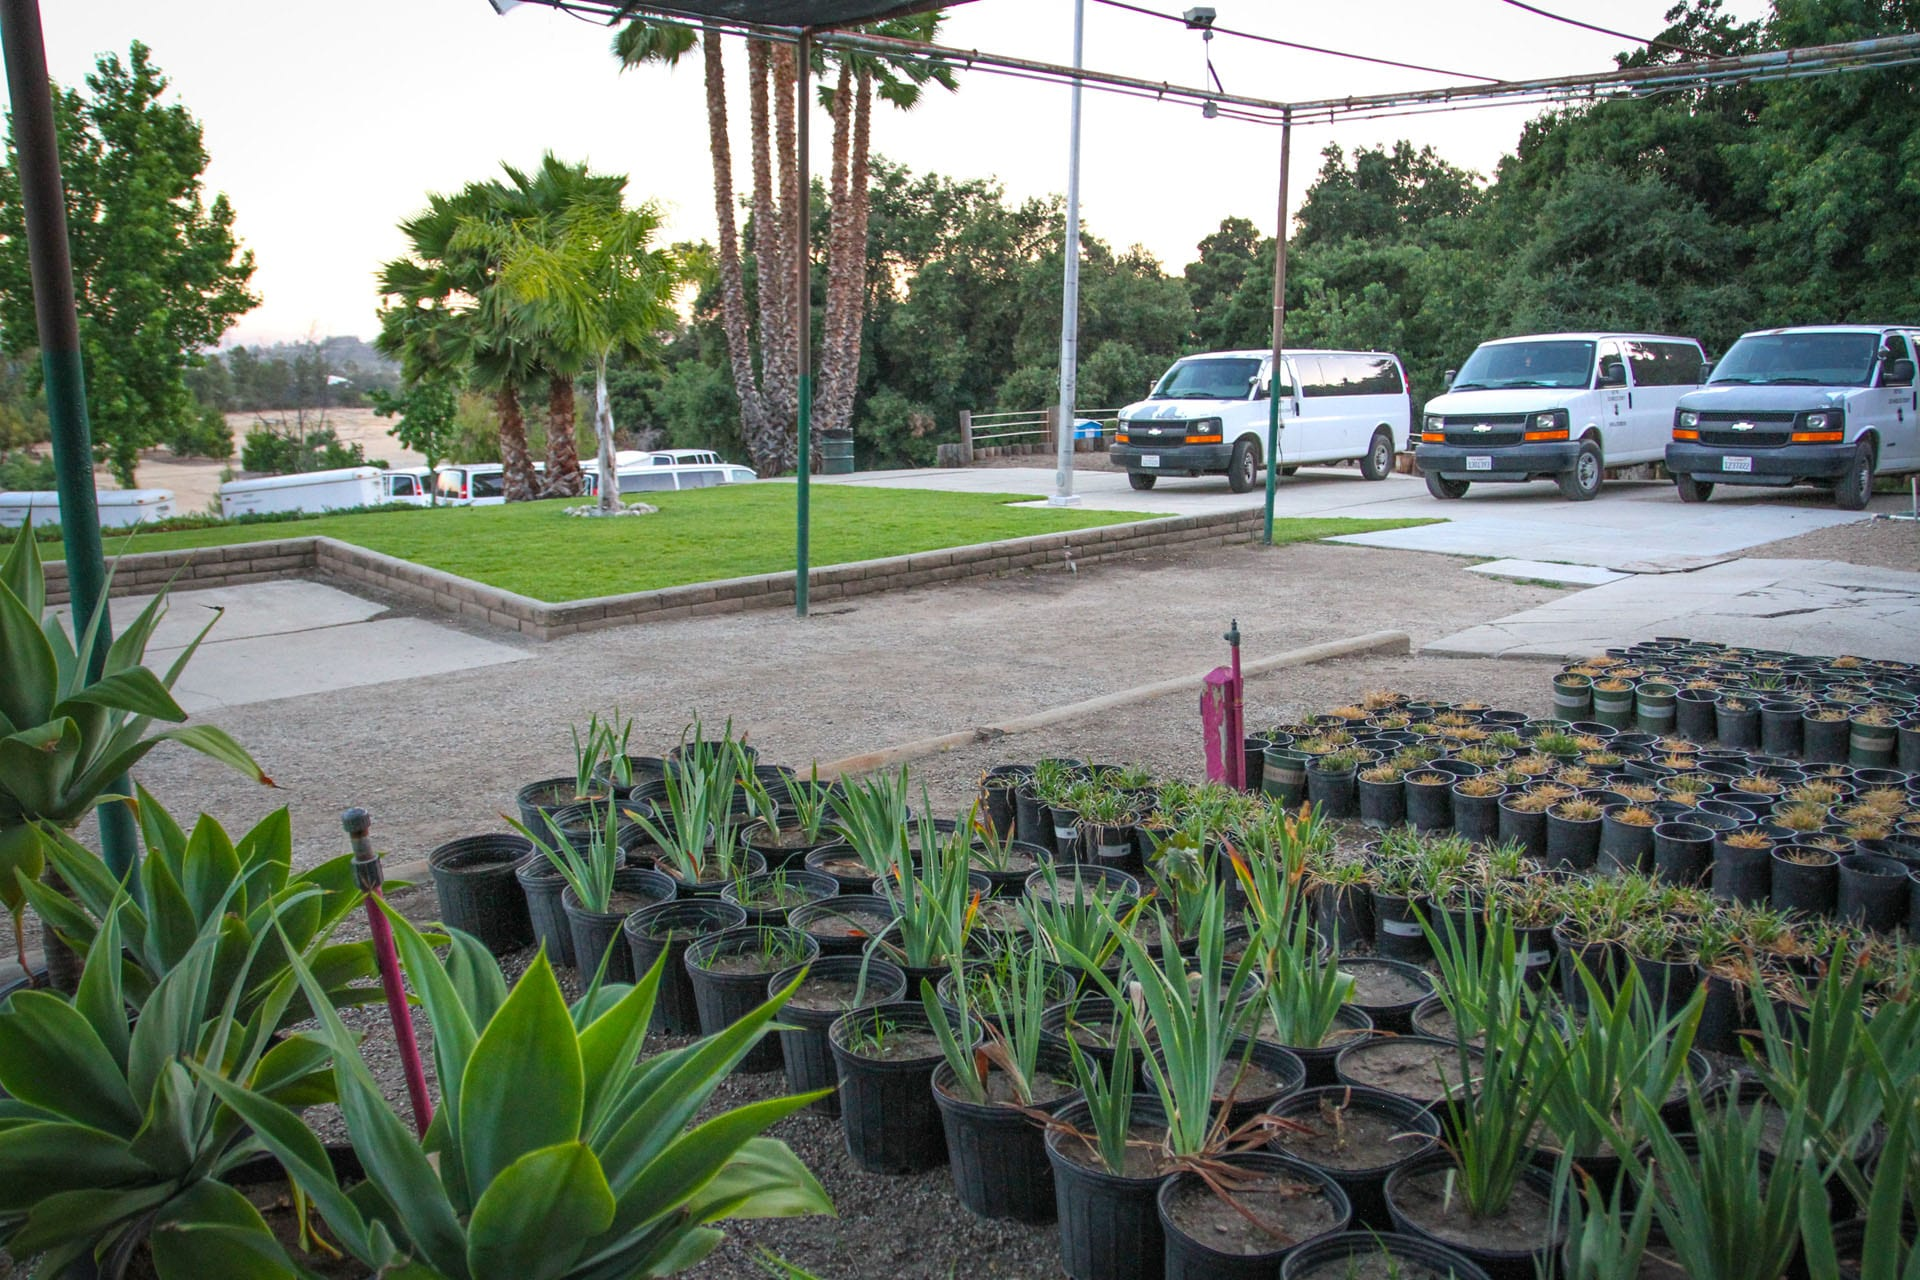 Potted plants, cars parked nearby